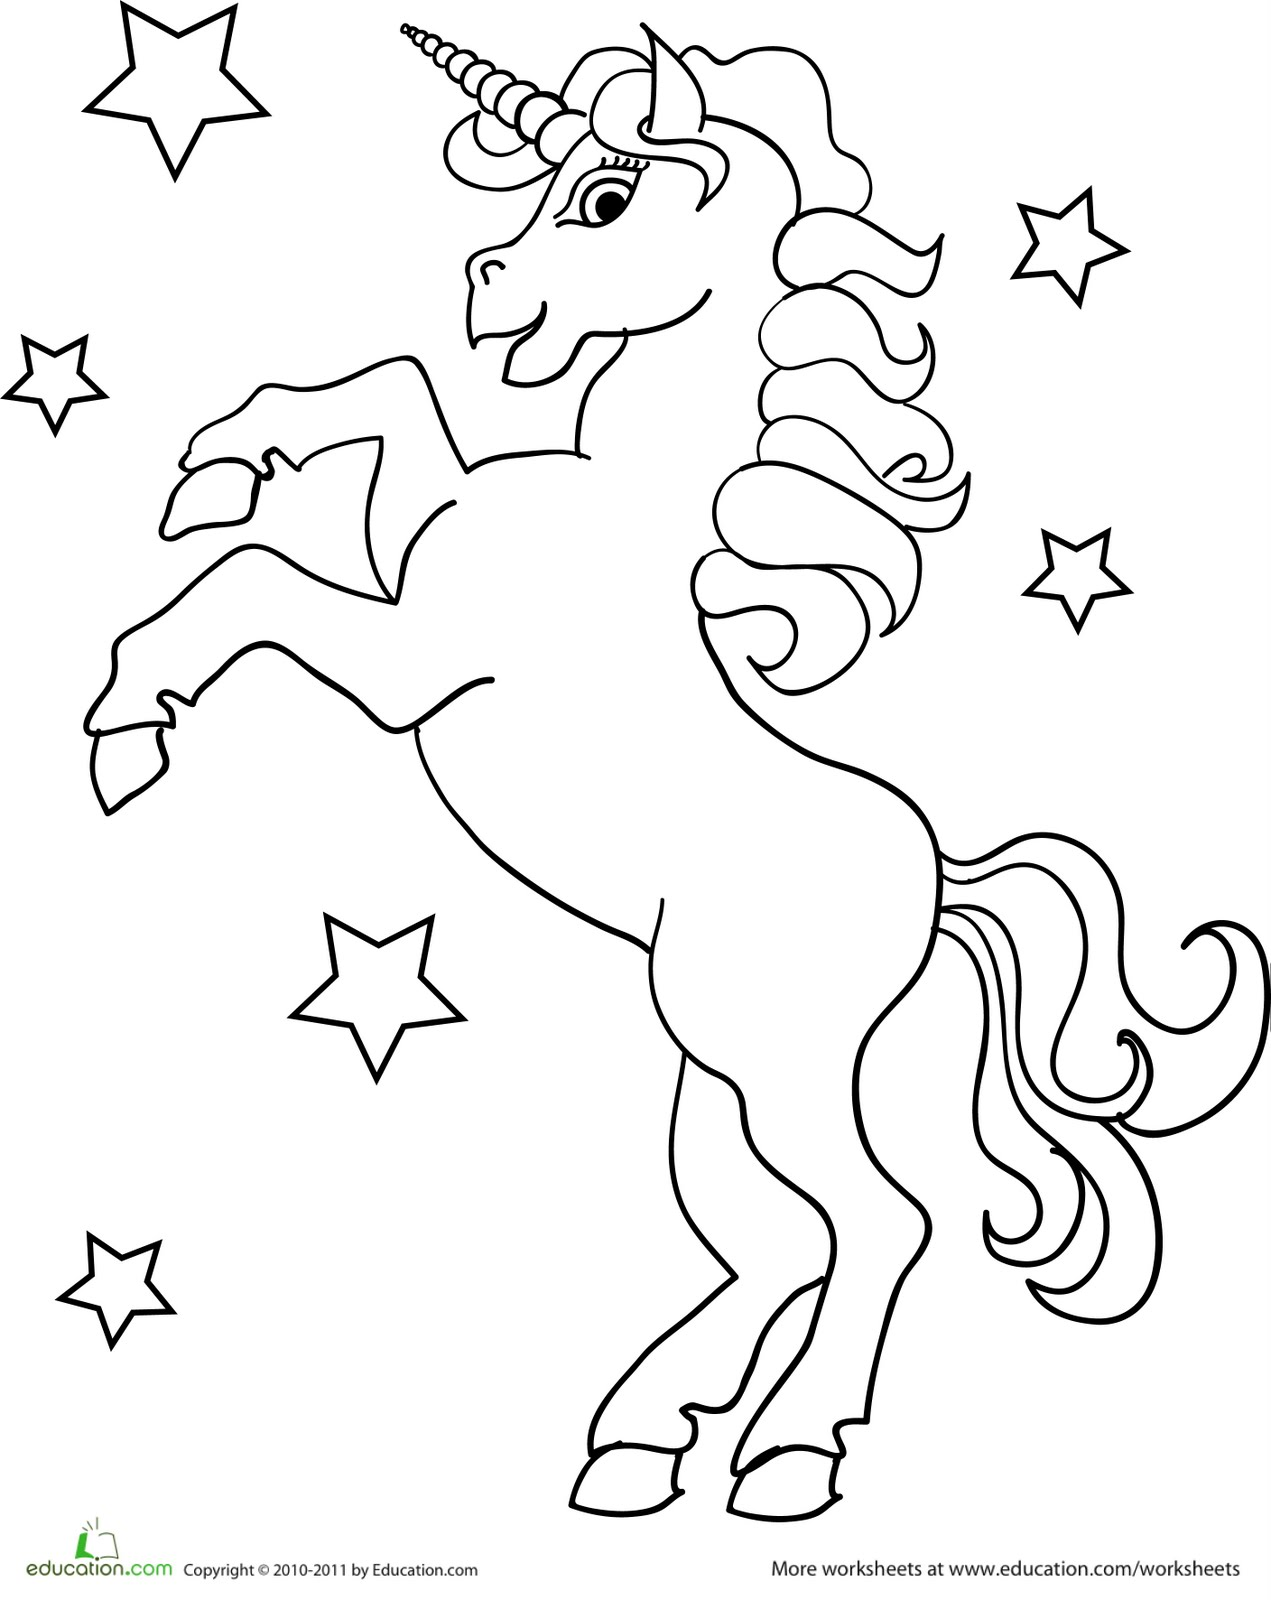 unicorn coloring pages printables - photo#8